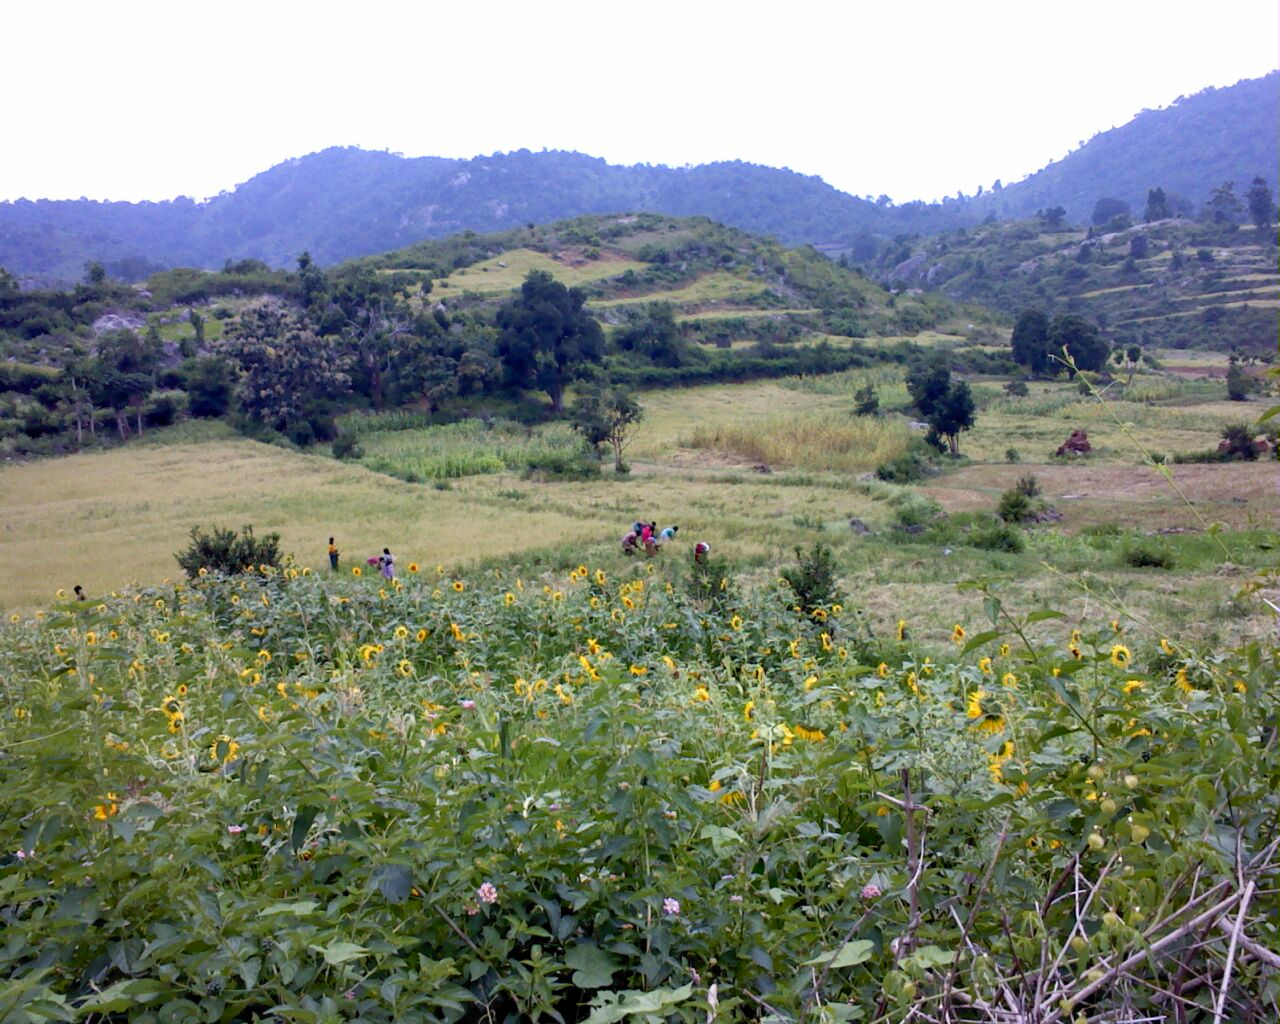 http://upload.wikimedia.org/wikipedia/commons/c/cd/Nature_view_of_jawadhu_hills.jpg